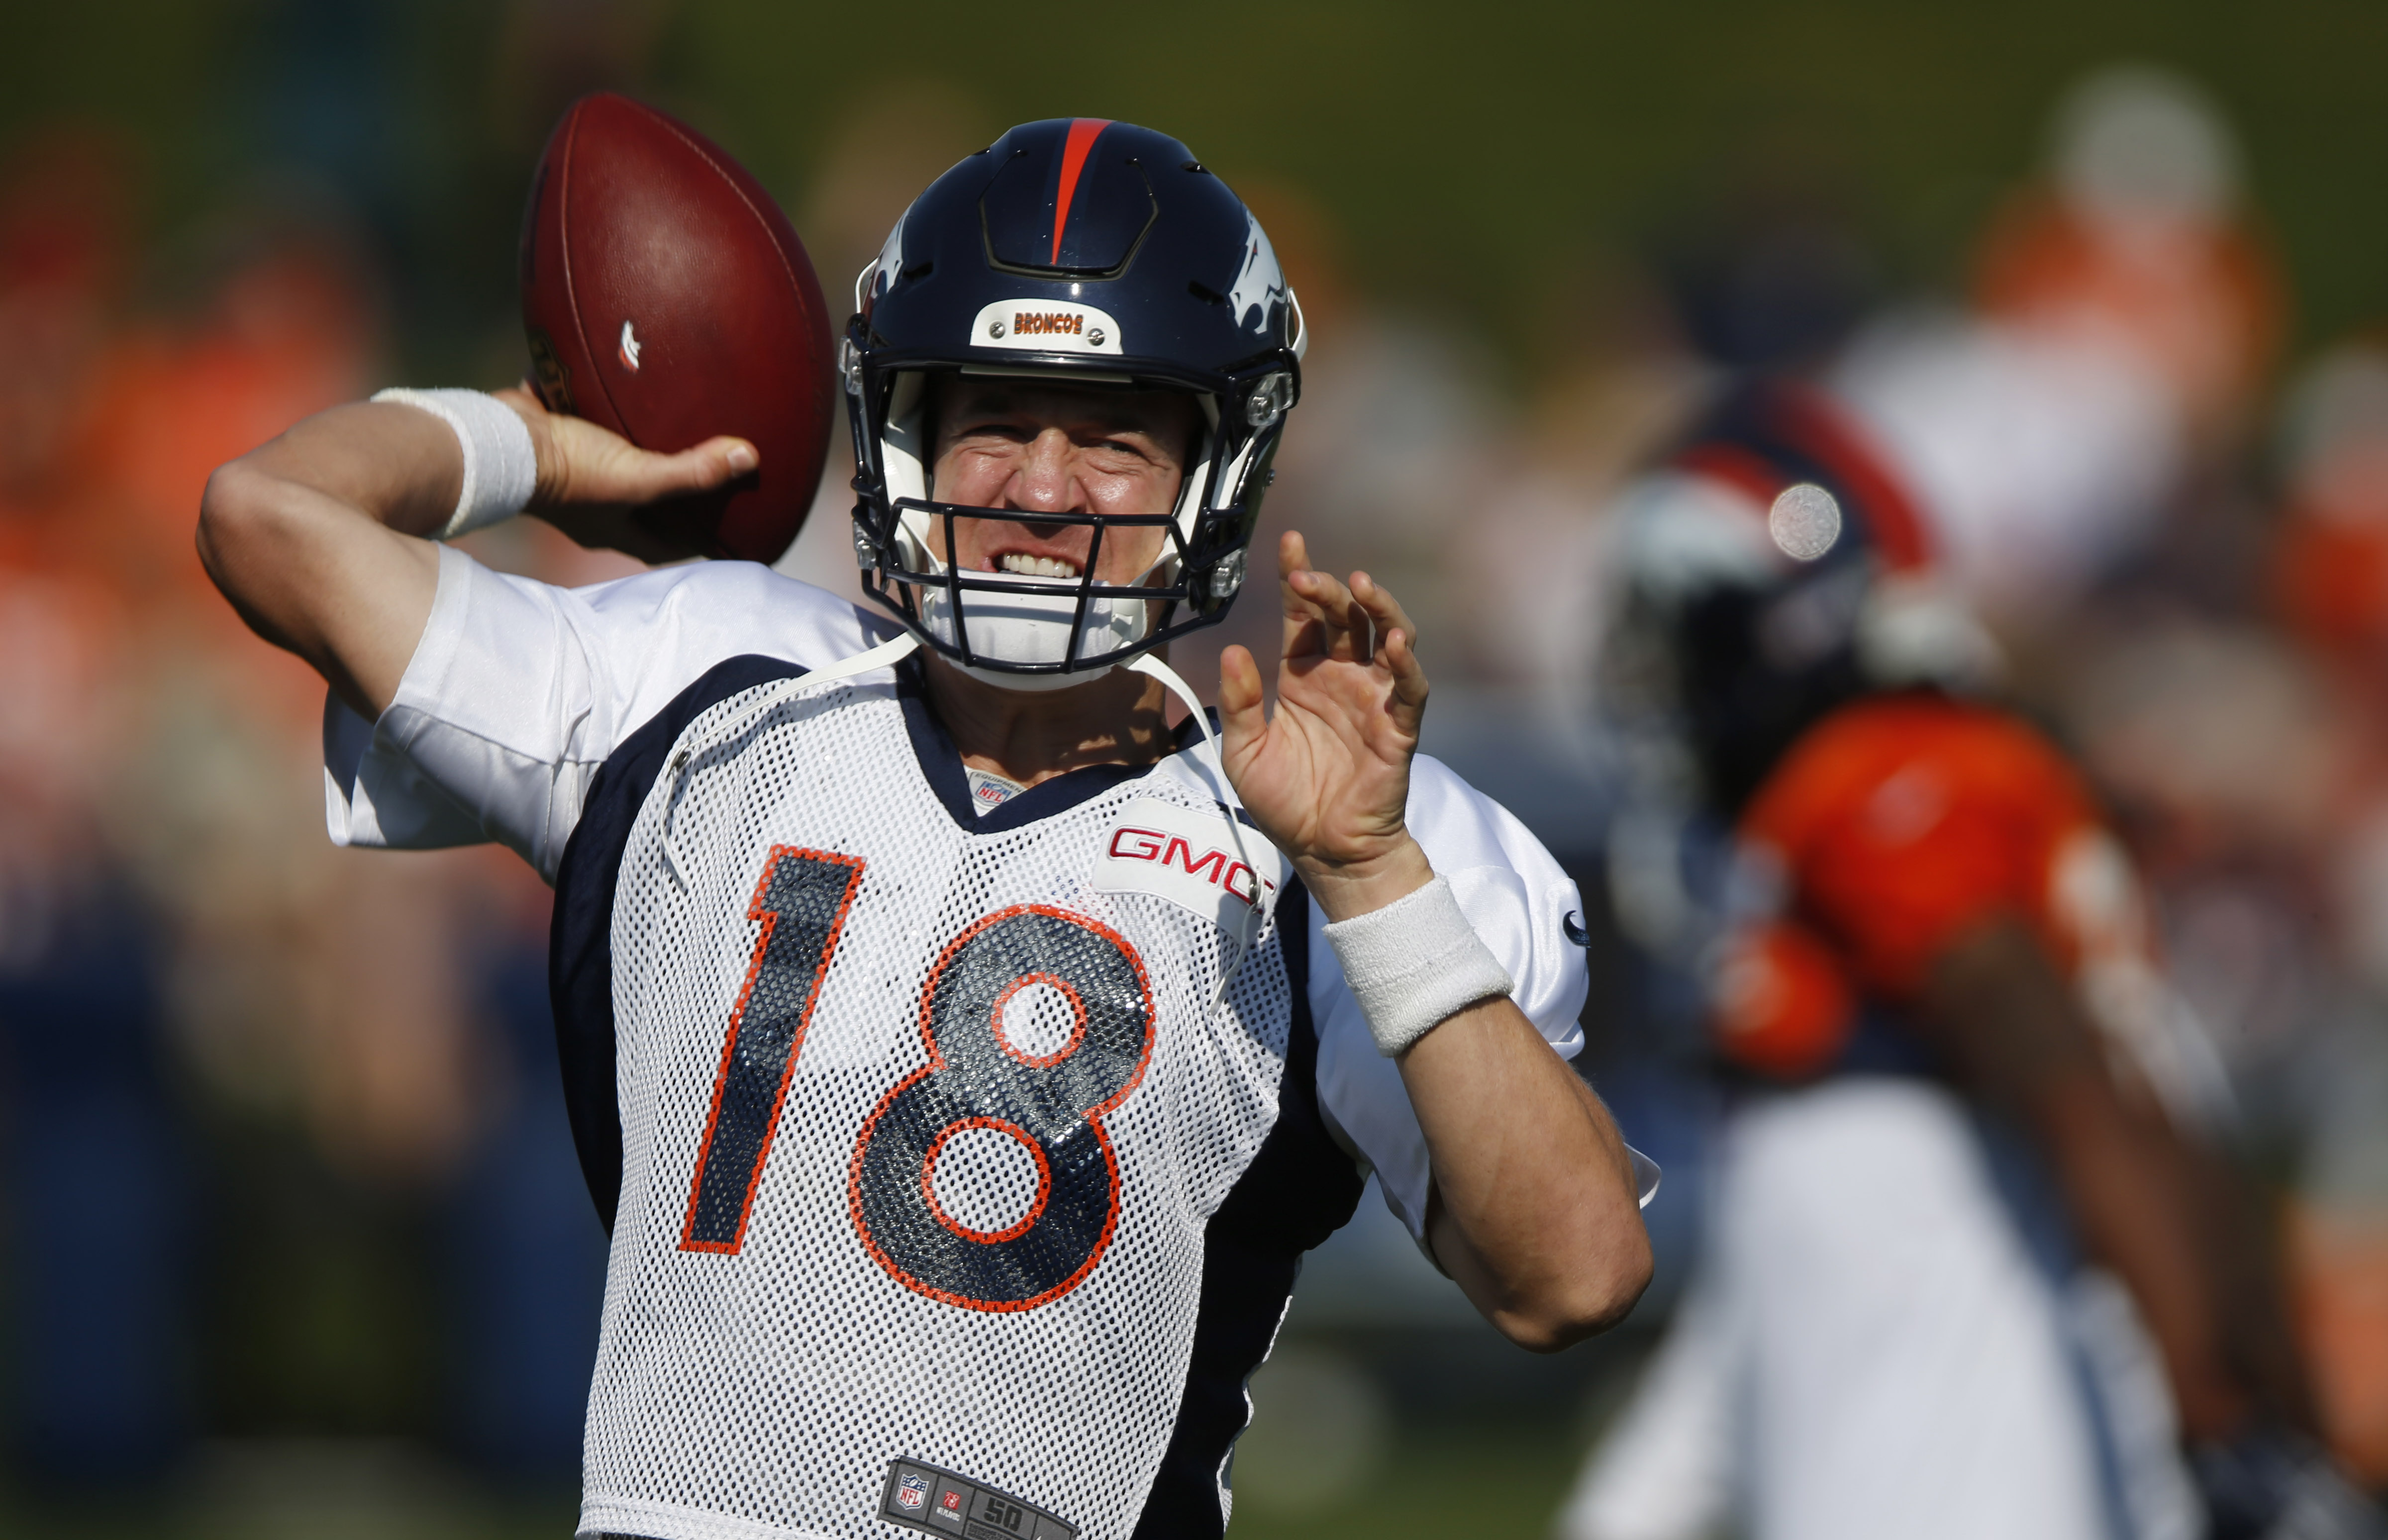 Denver Broncos quarterback Peyton Manning throws during the morning session at the team's NFL football training camp Tuesday, Aug. 18, 2015, in Englewood, Colo. (AP Photo/David Zalubowski)